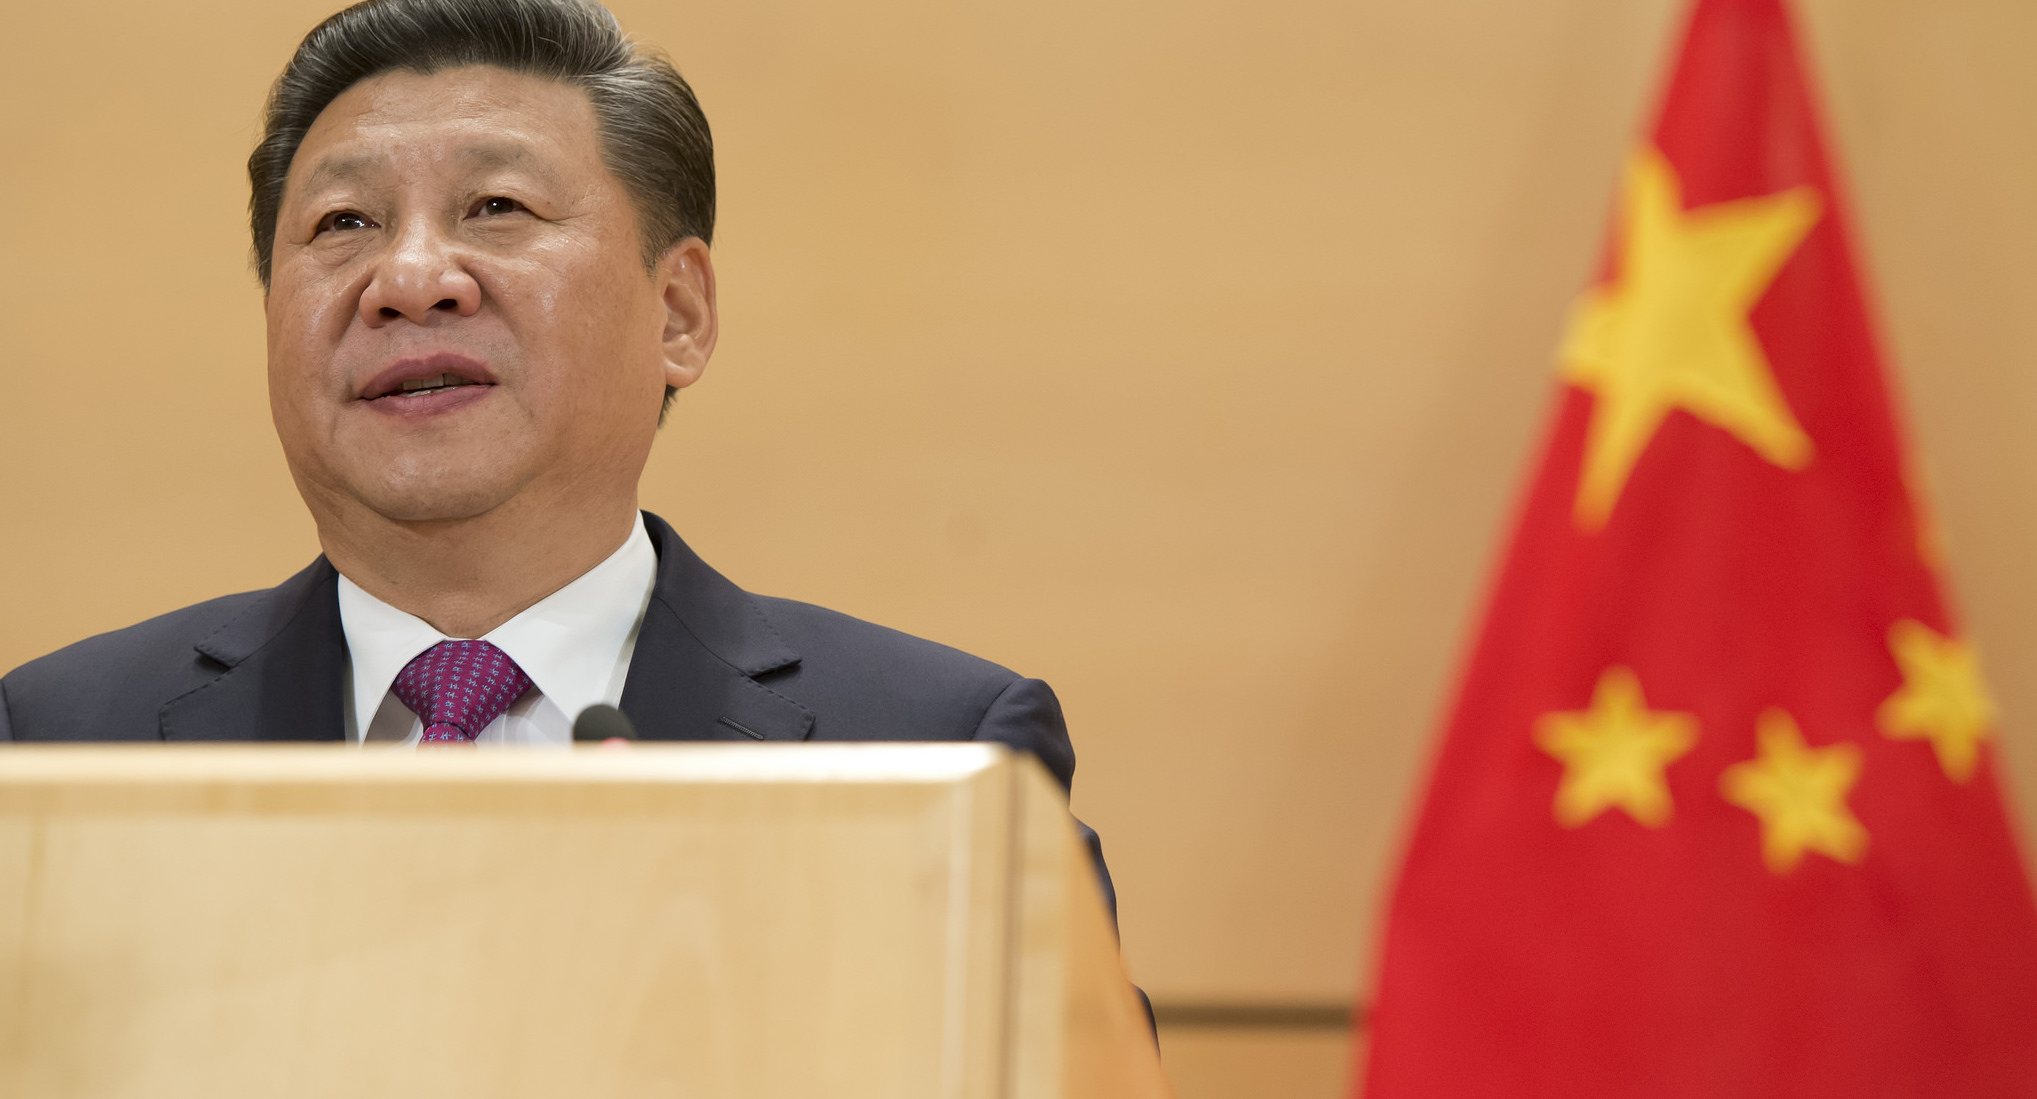 China's Xi Jinping (Photo: UNGeneva/Flickr)